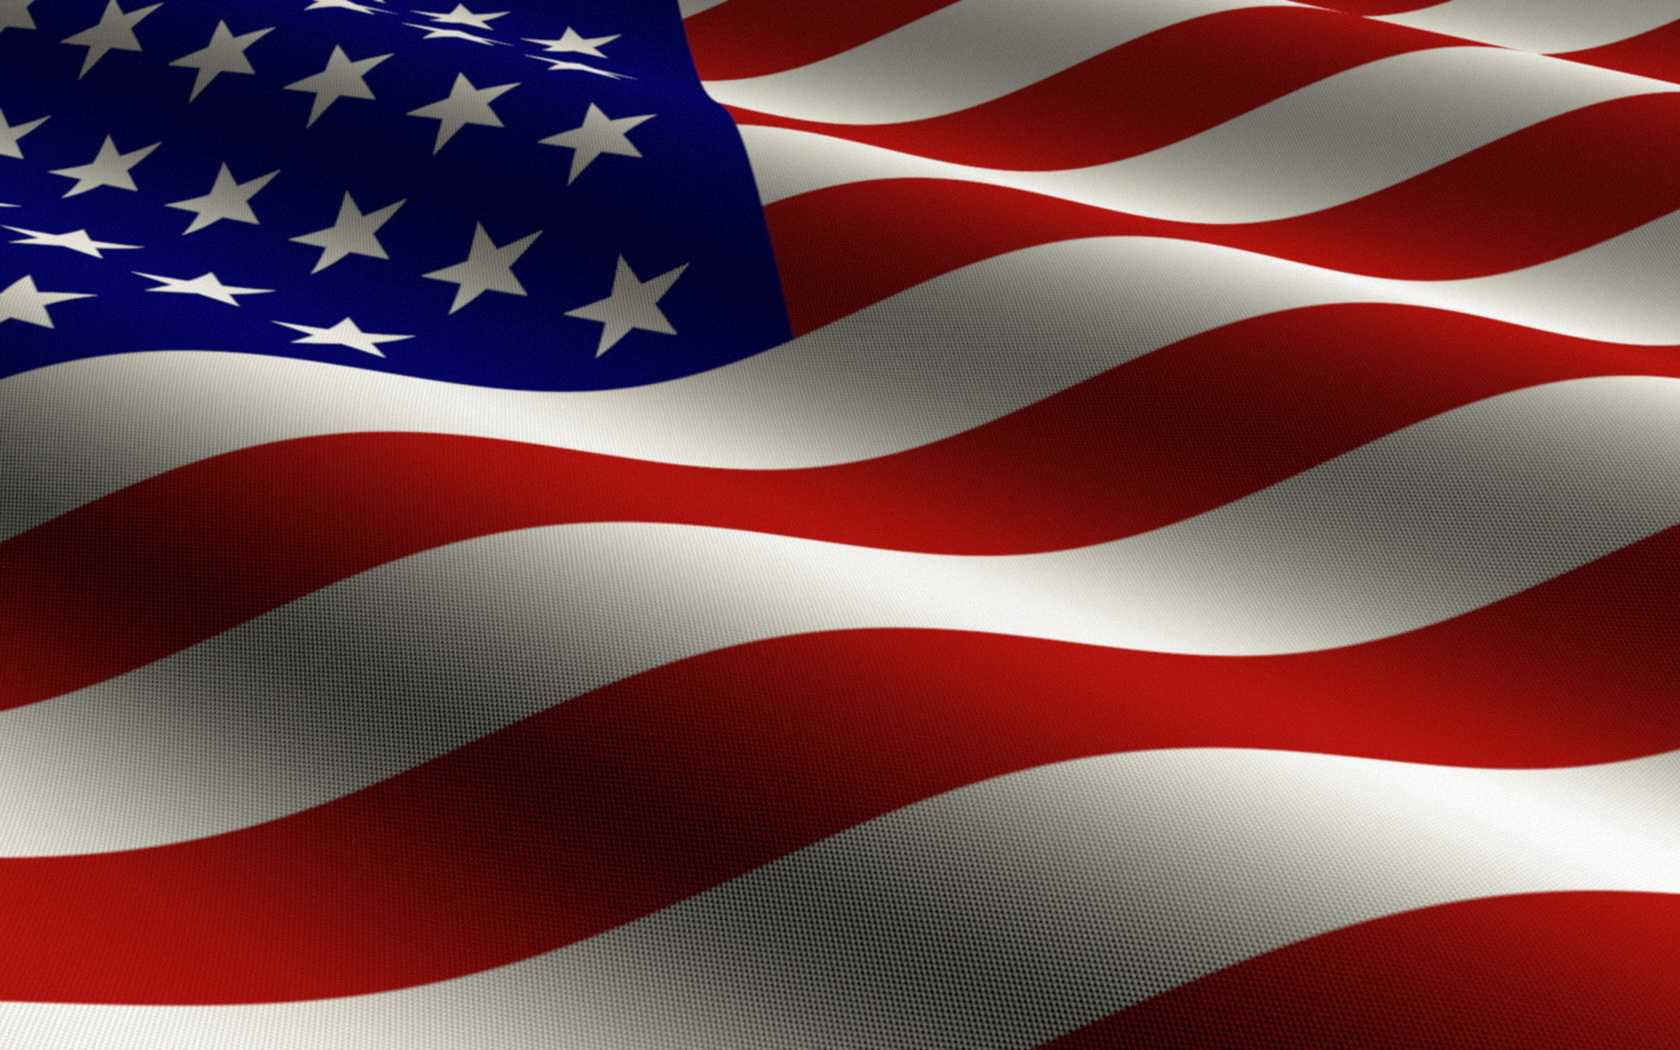 American Flag Backgrounds For Powerpoint Templates – Ppt For American Flag Powerpoint Template